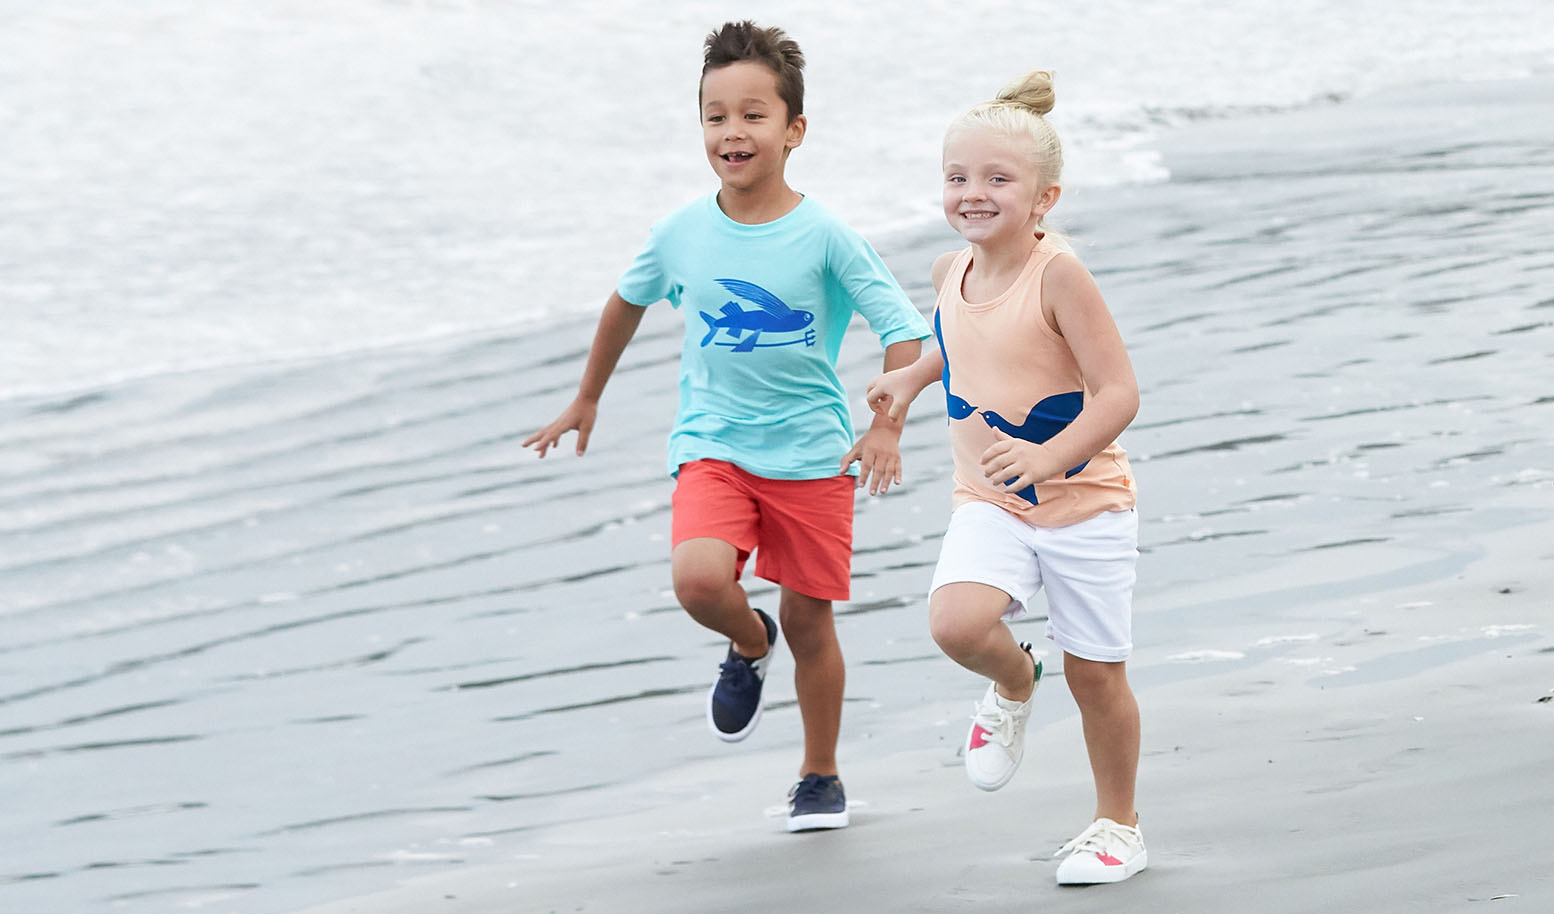 A boy and a girl are laughing as they run along the shoreline.